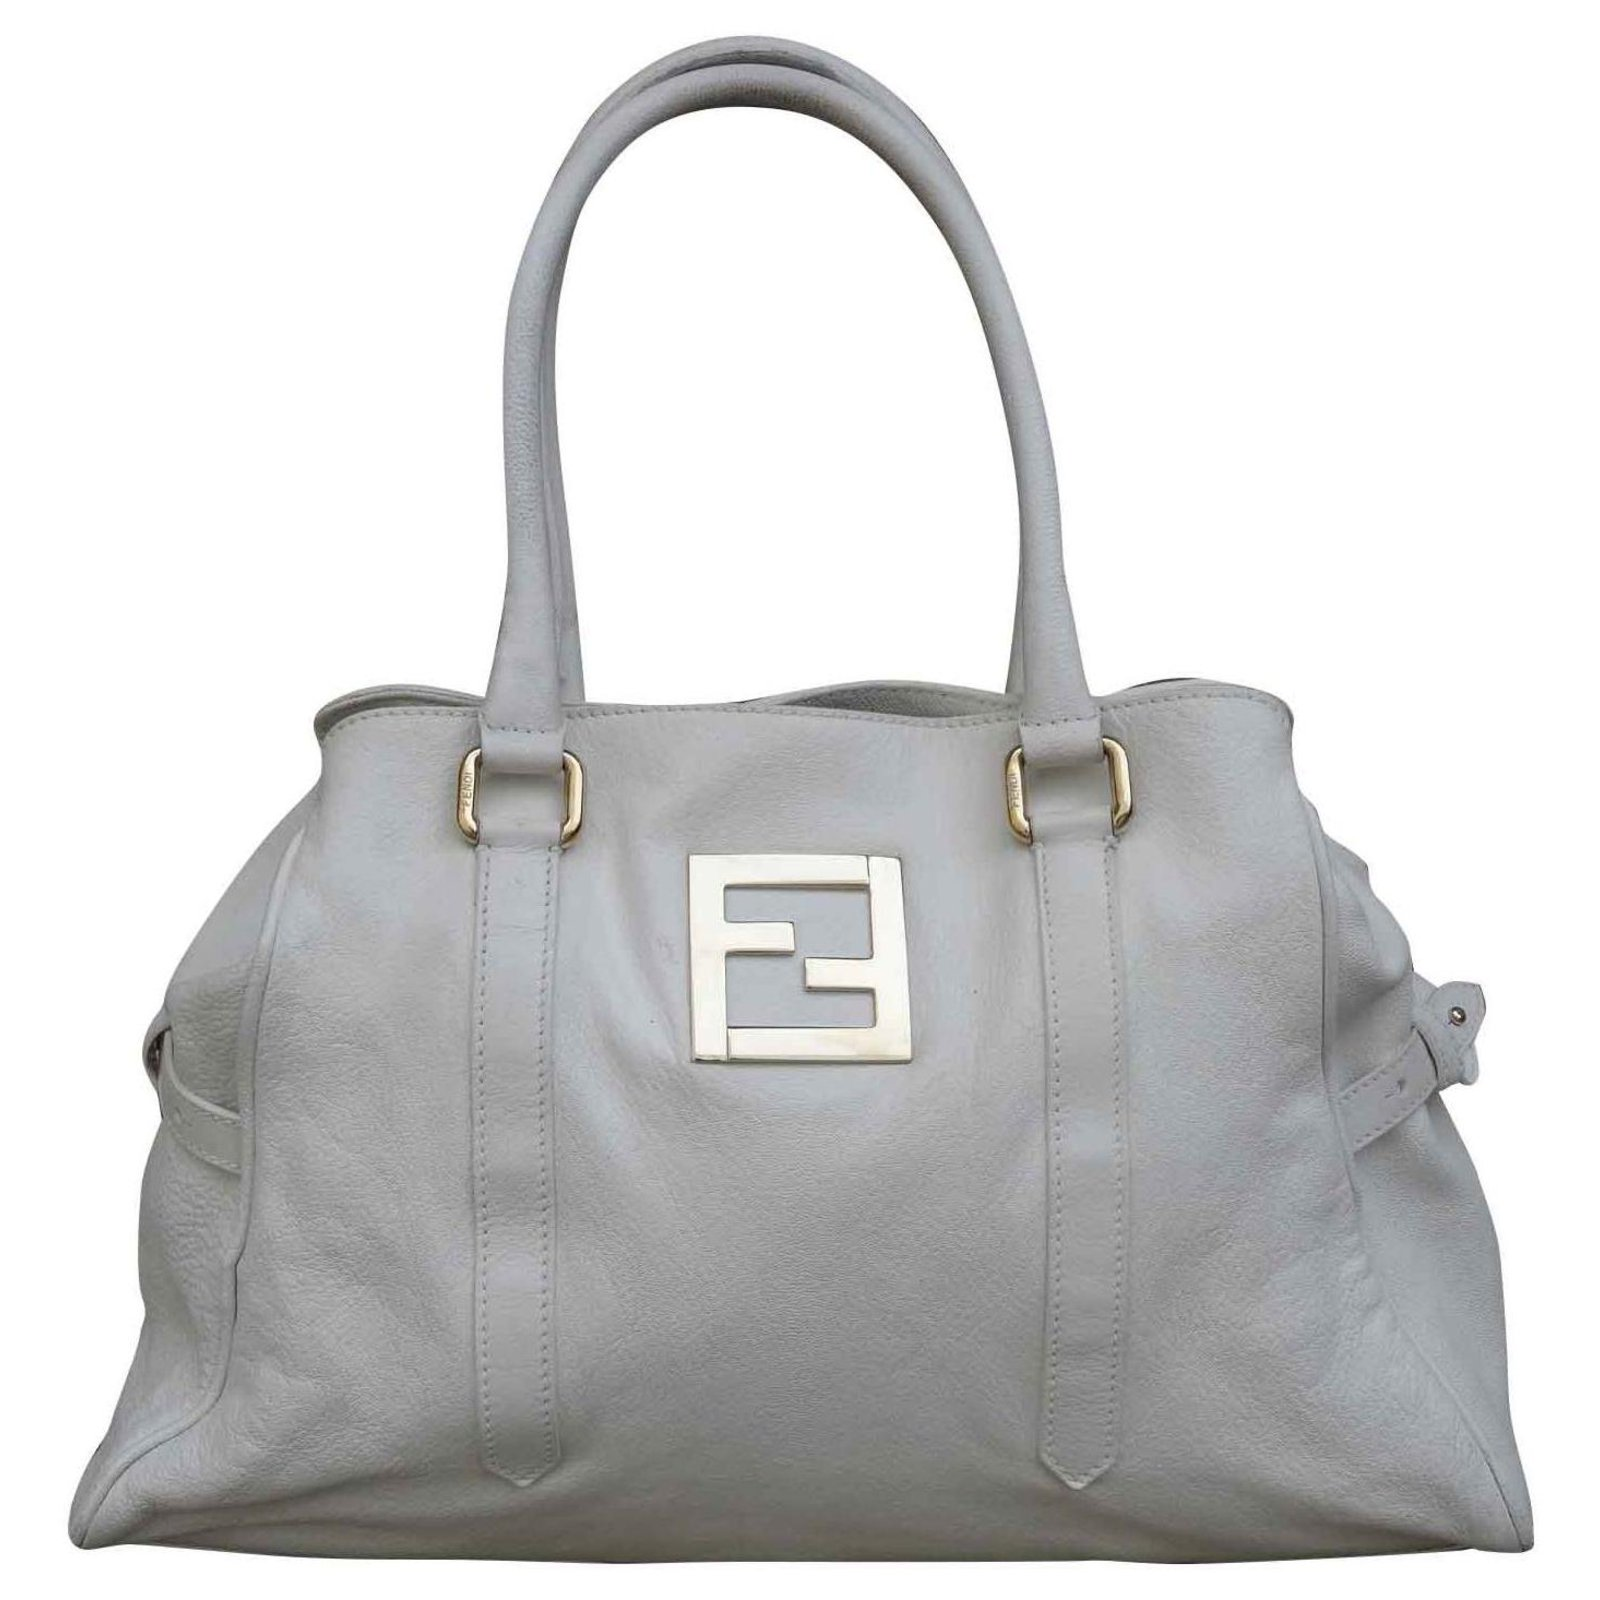 Fendi Bag Handbags Leather White